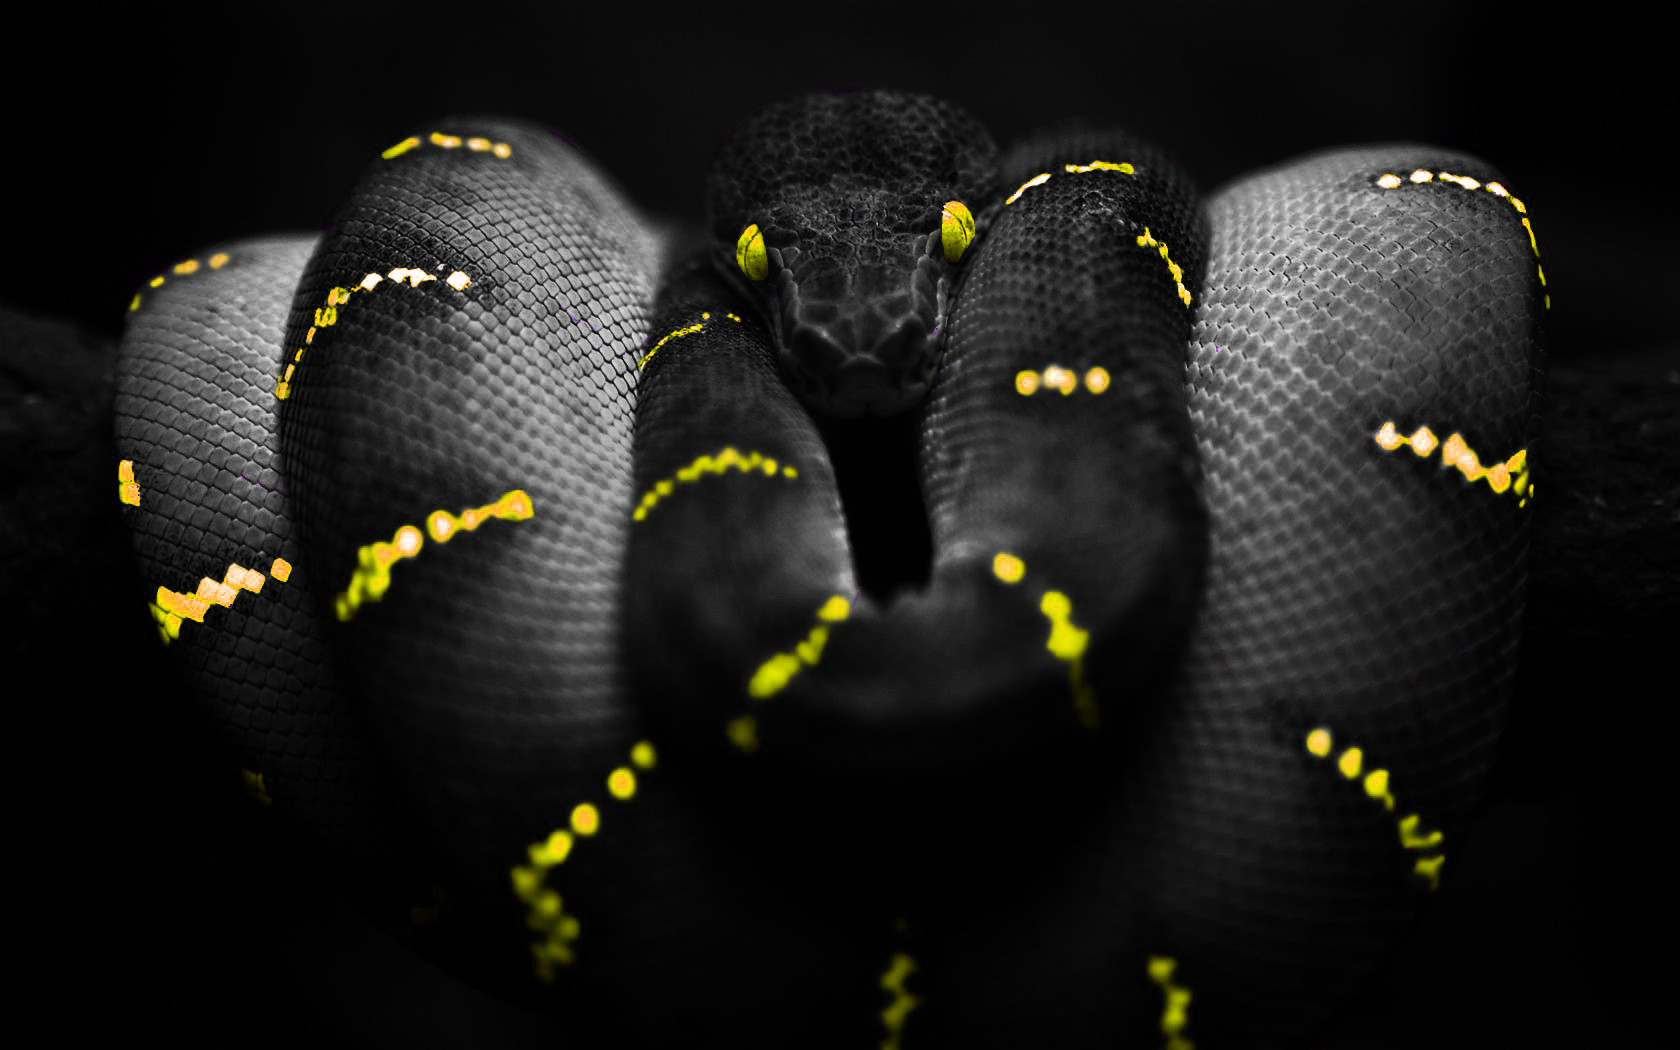 General 1680x1050 snake selective coloring Boa constrictor yellow yellow eyes reptile animals digital art